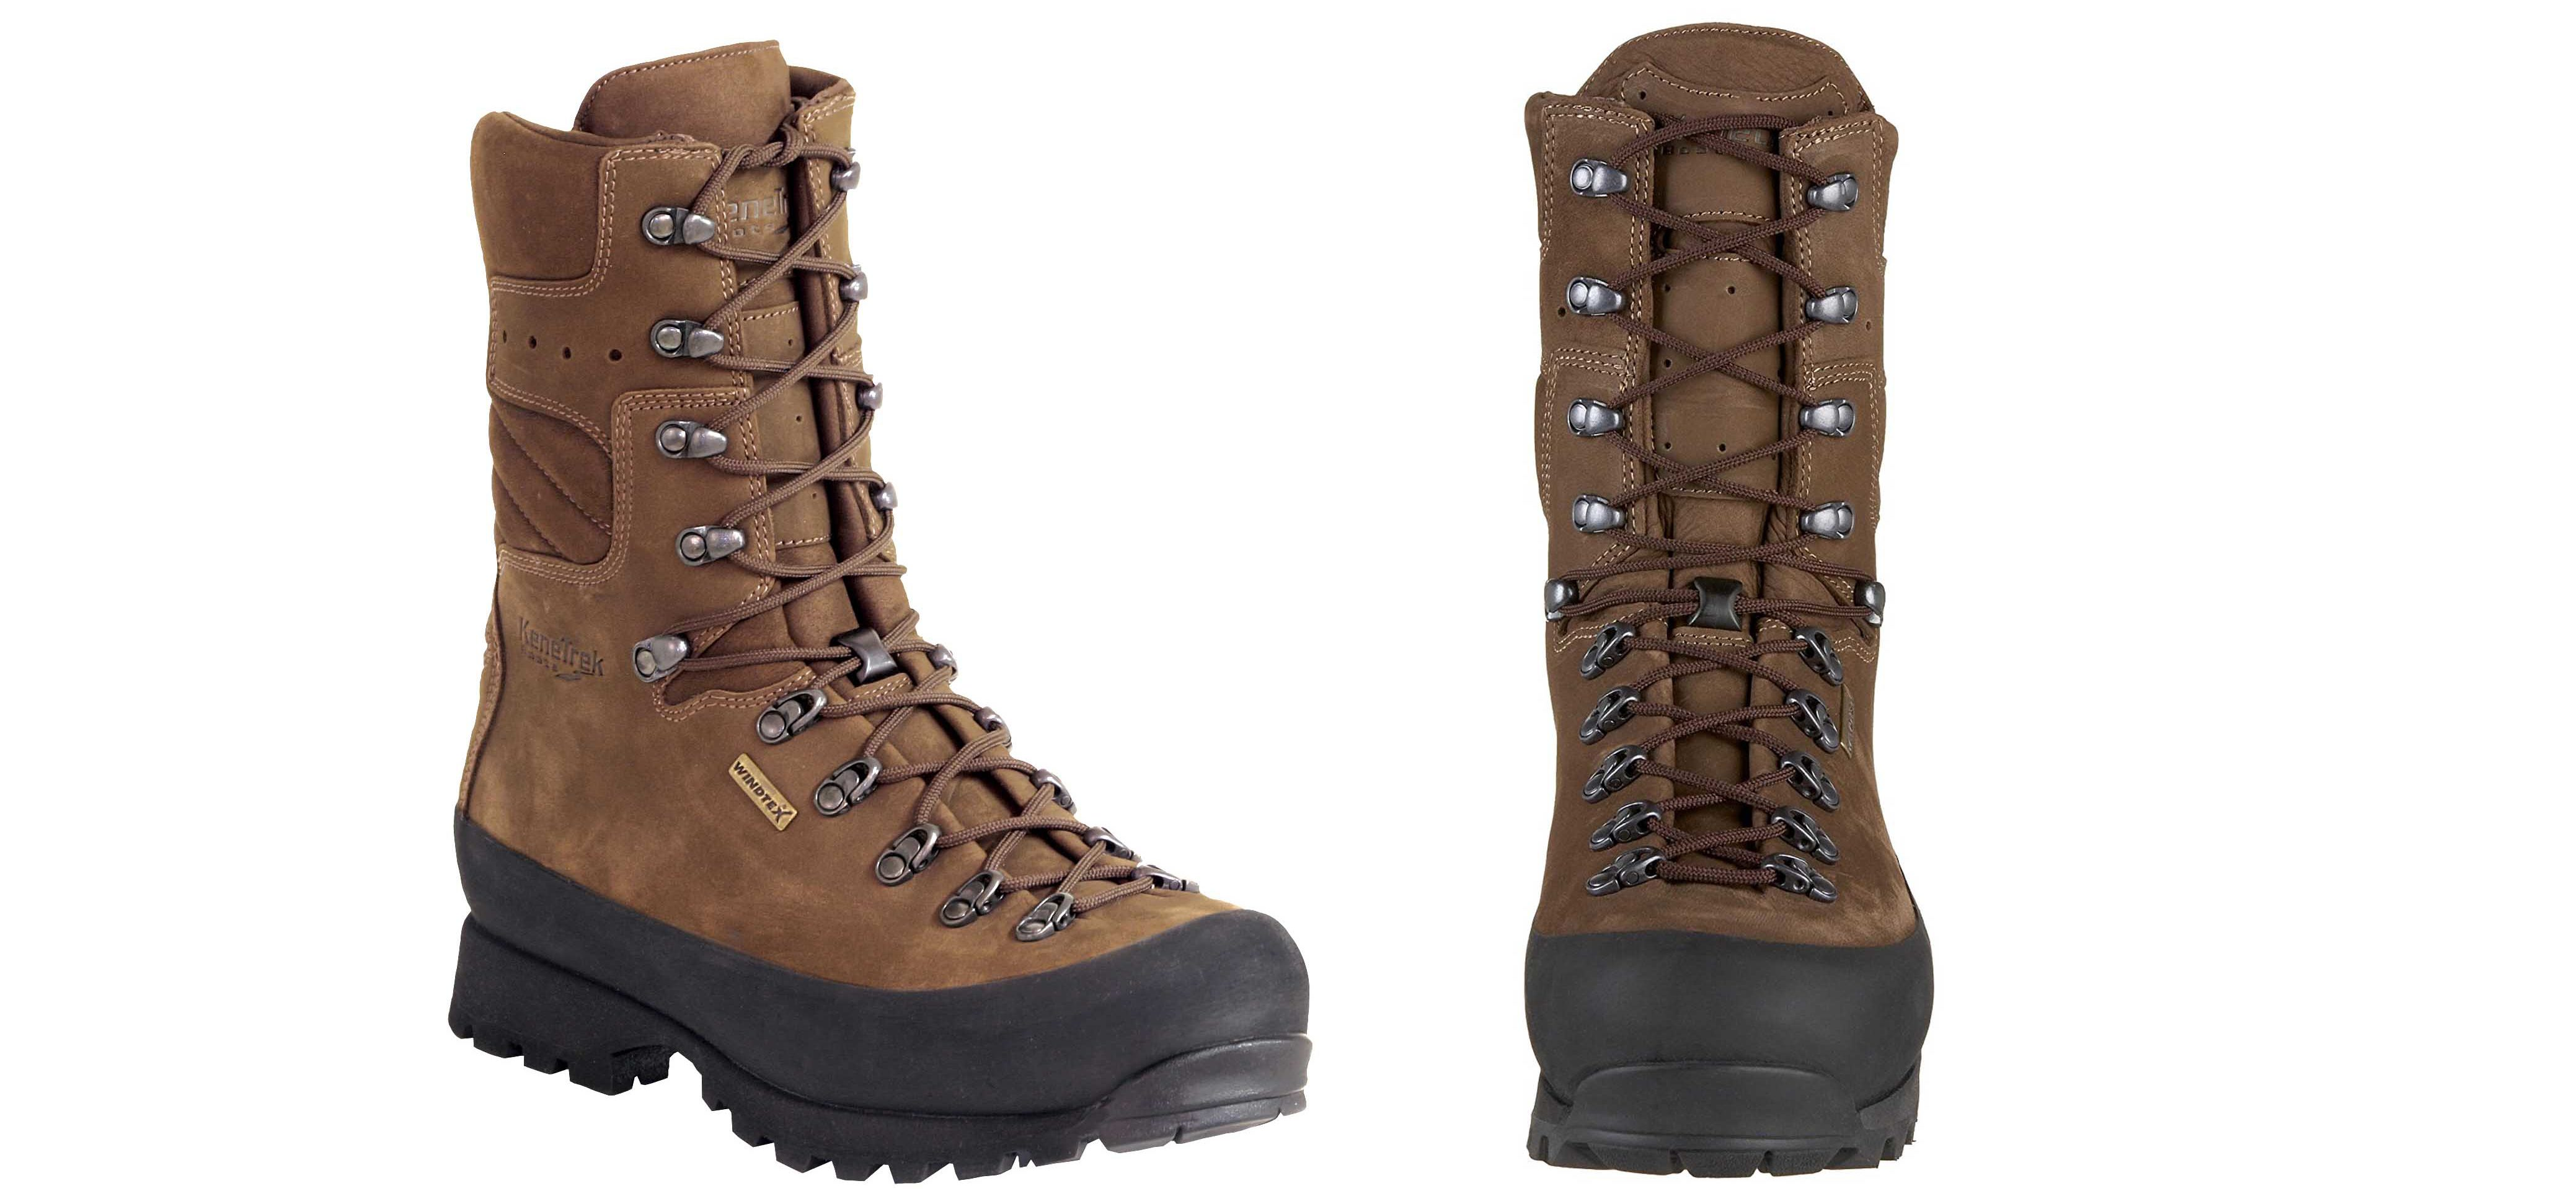 Hunting Boots Reviews Top 7 Hunting Boots June 2018